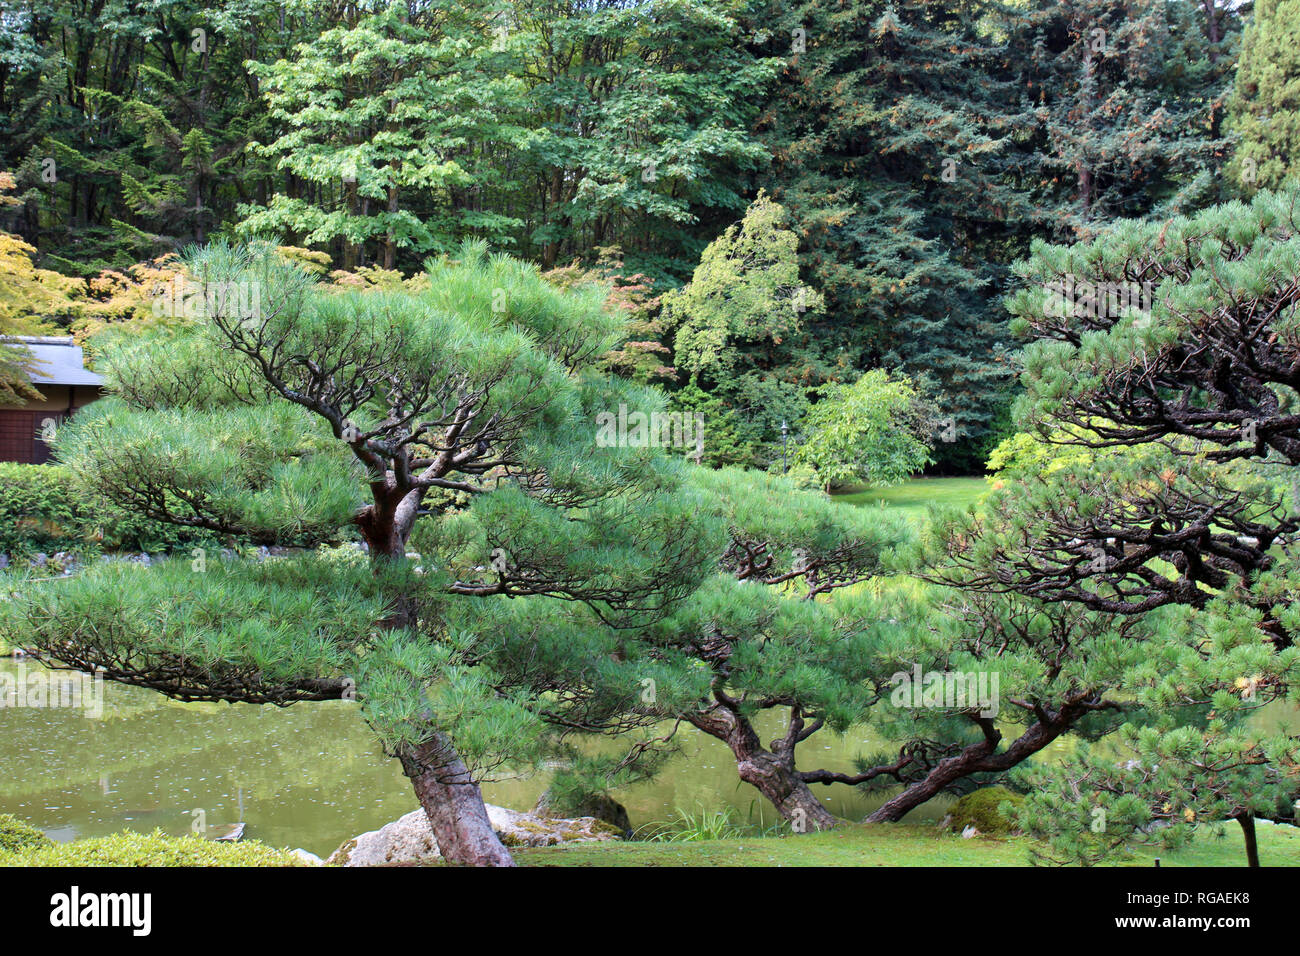 Sprawling Pine Trees in front of a pond and a Japanese Tea House in Seattle, Washington - Stock Image